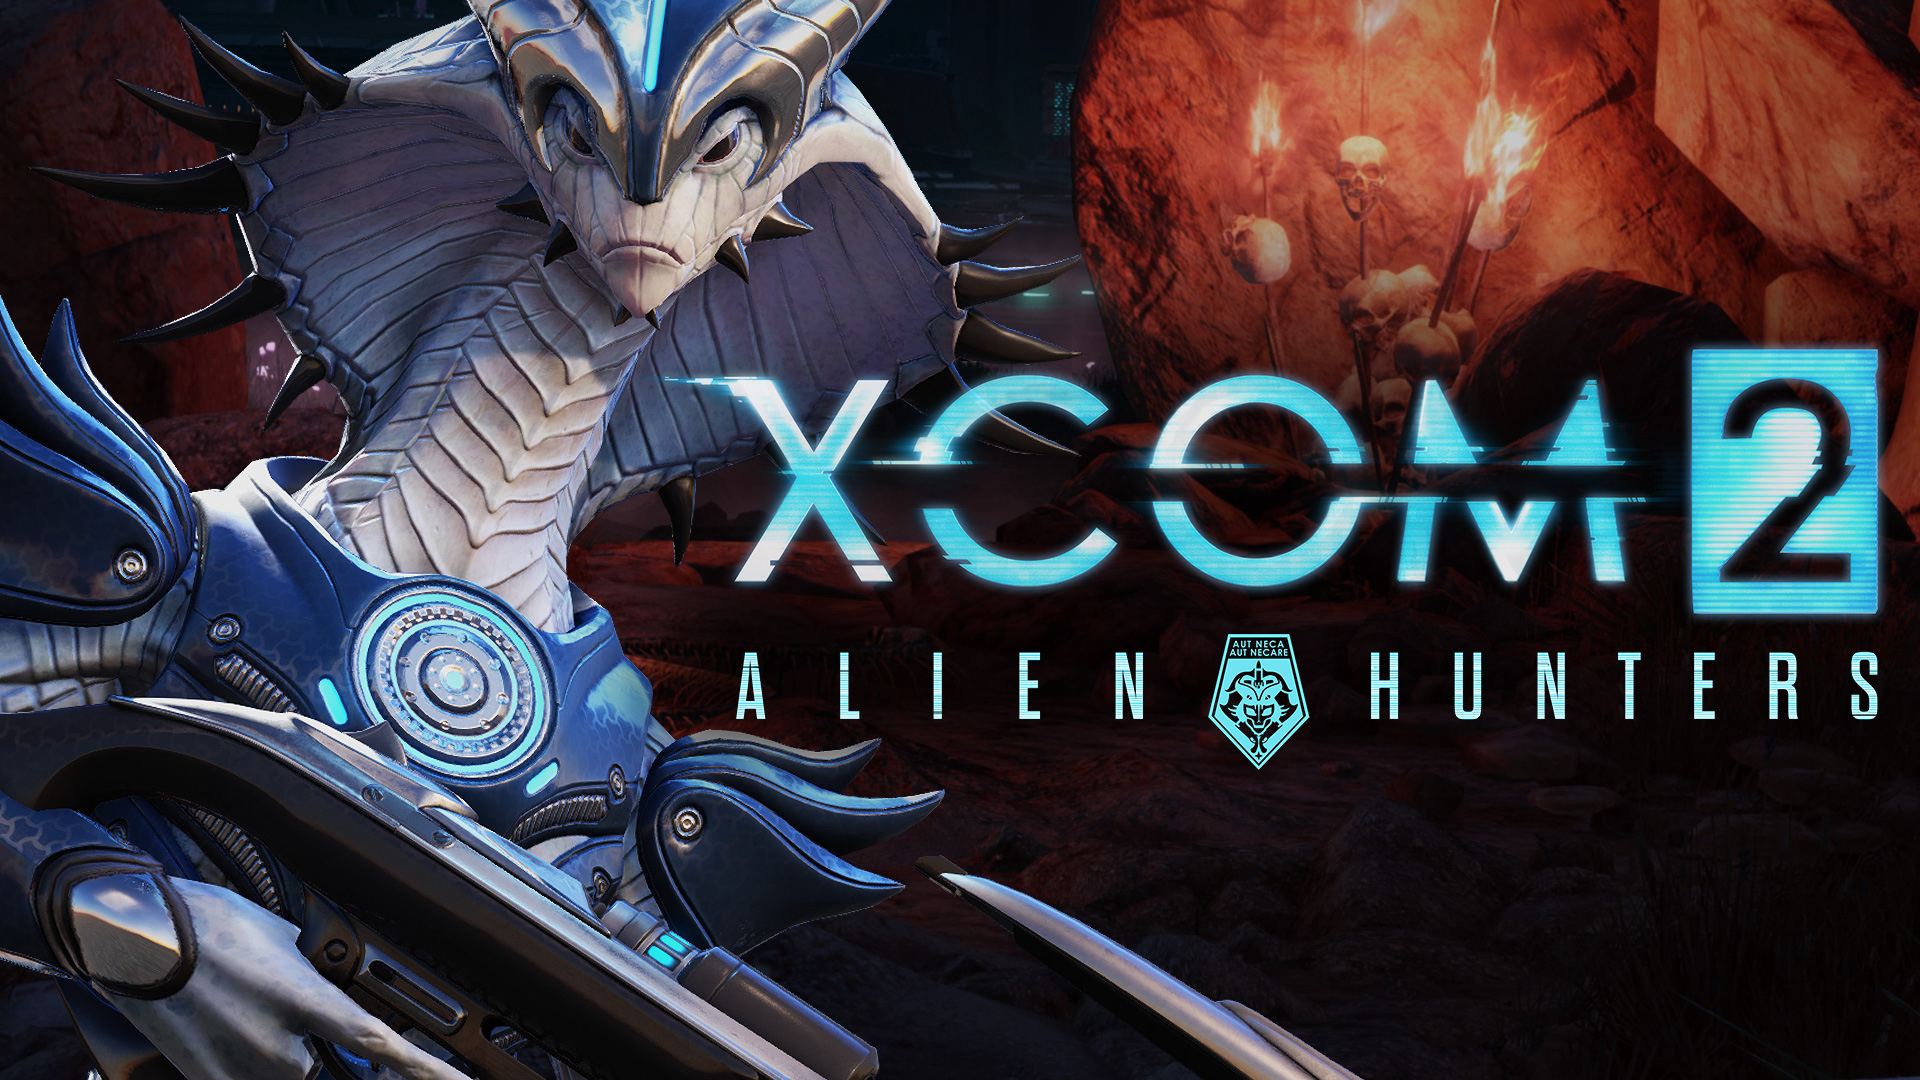 alien hunters xcom wiki fandom powered by wikia. Black Bedroom Furniture Sets. Home Design Ideas